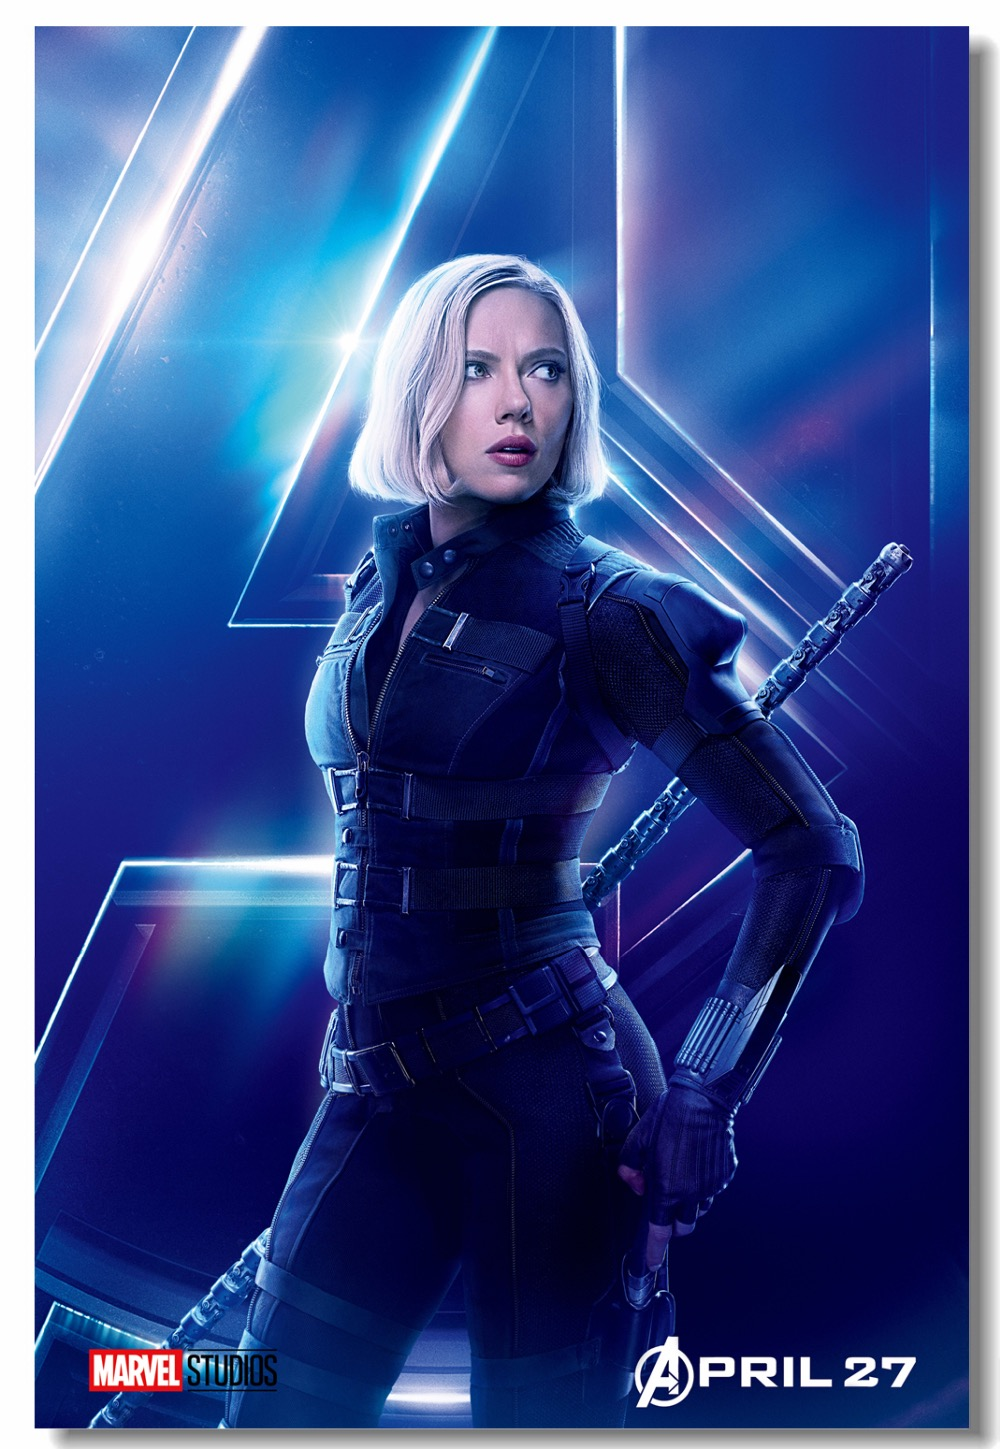 Us 599 25 Offcustom Canvas Wall Decor Scarlett Johansson Black Widow Poster Marvel Avengers Infinity War Wall Sticker Falcon Wallpaper 0371 In